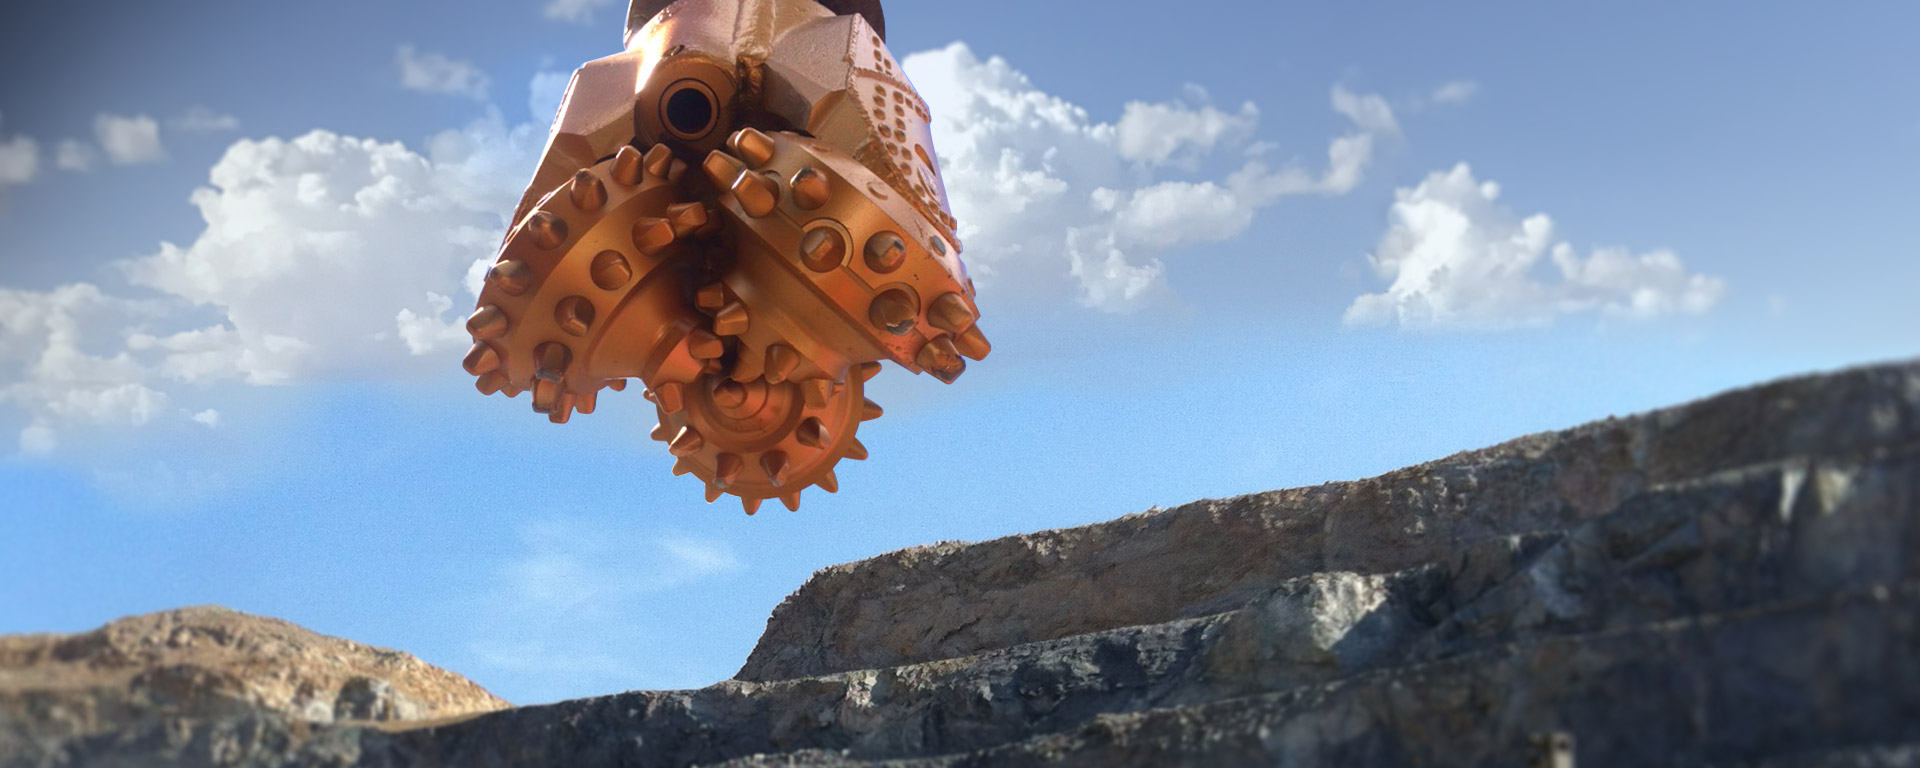 Rotary Tricone Products | Australasian Mining Services